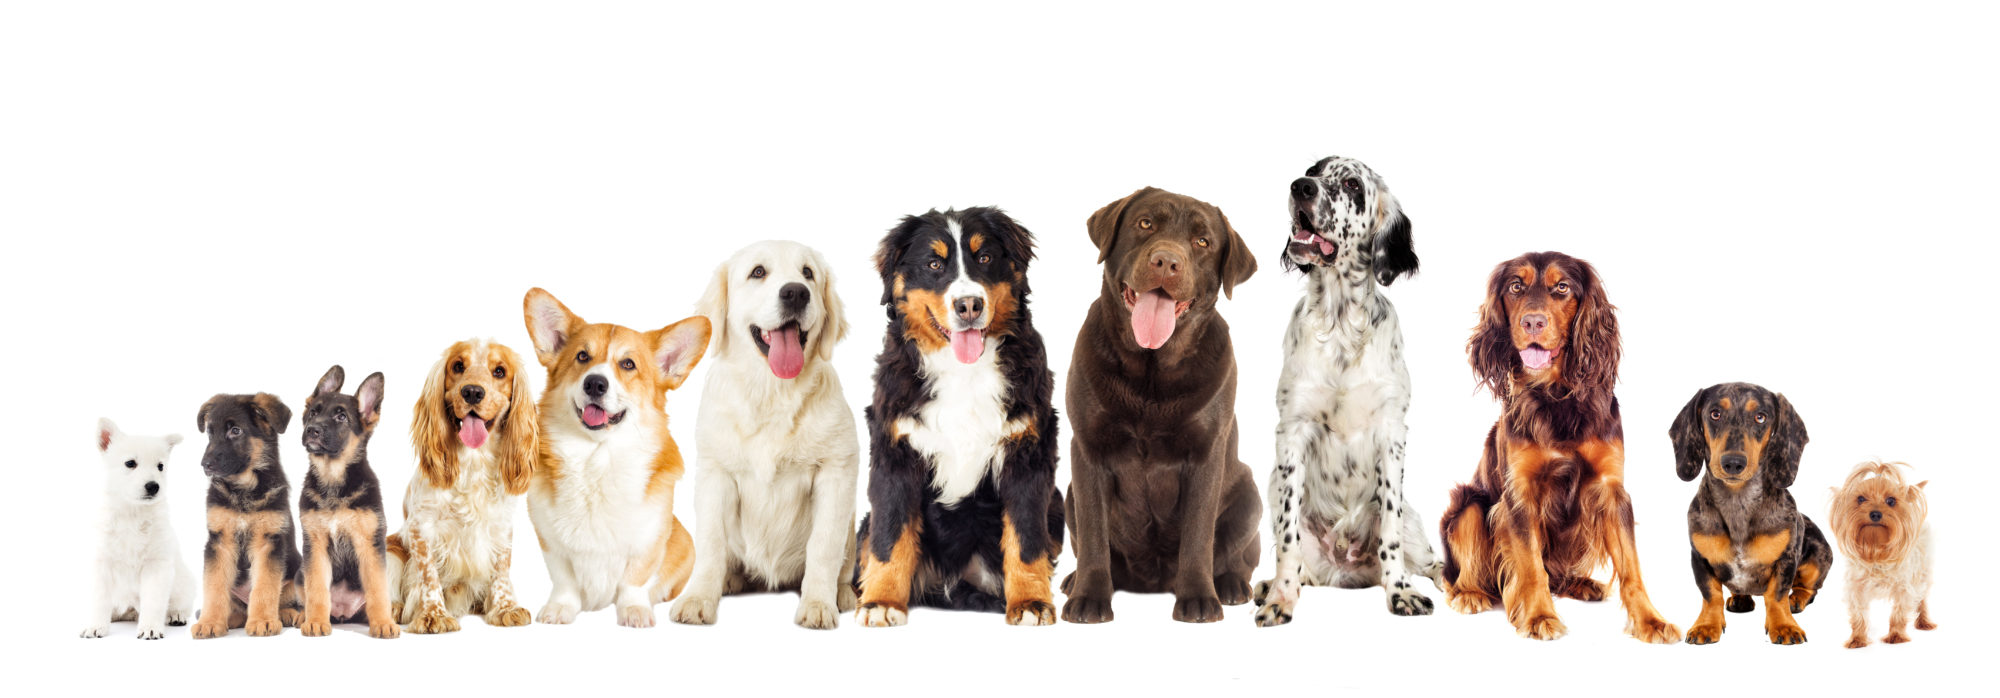 Set of dogs on white background looking